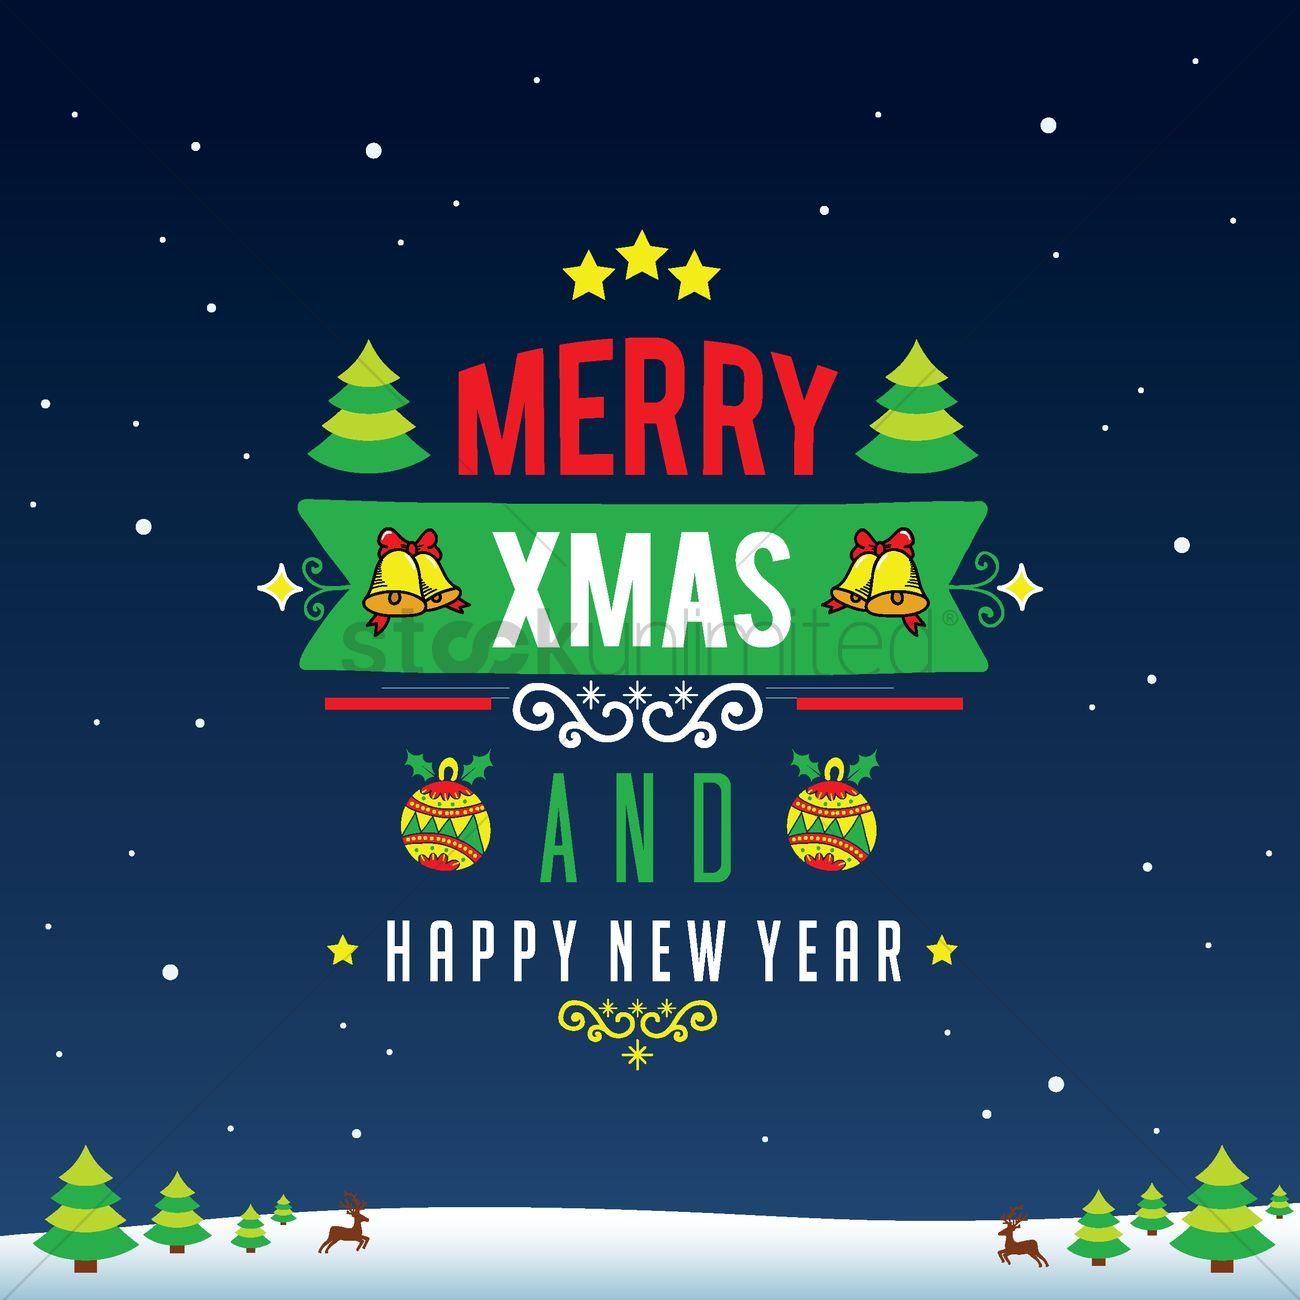 Merry christmas and happy new year card design Vector Image ...